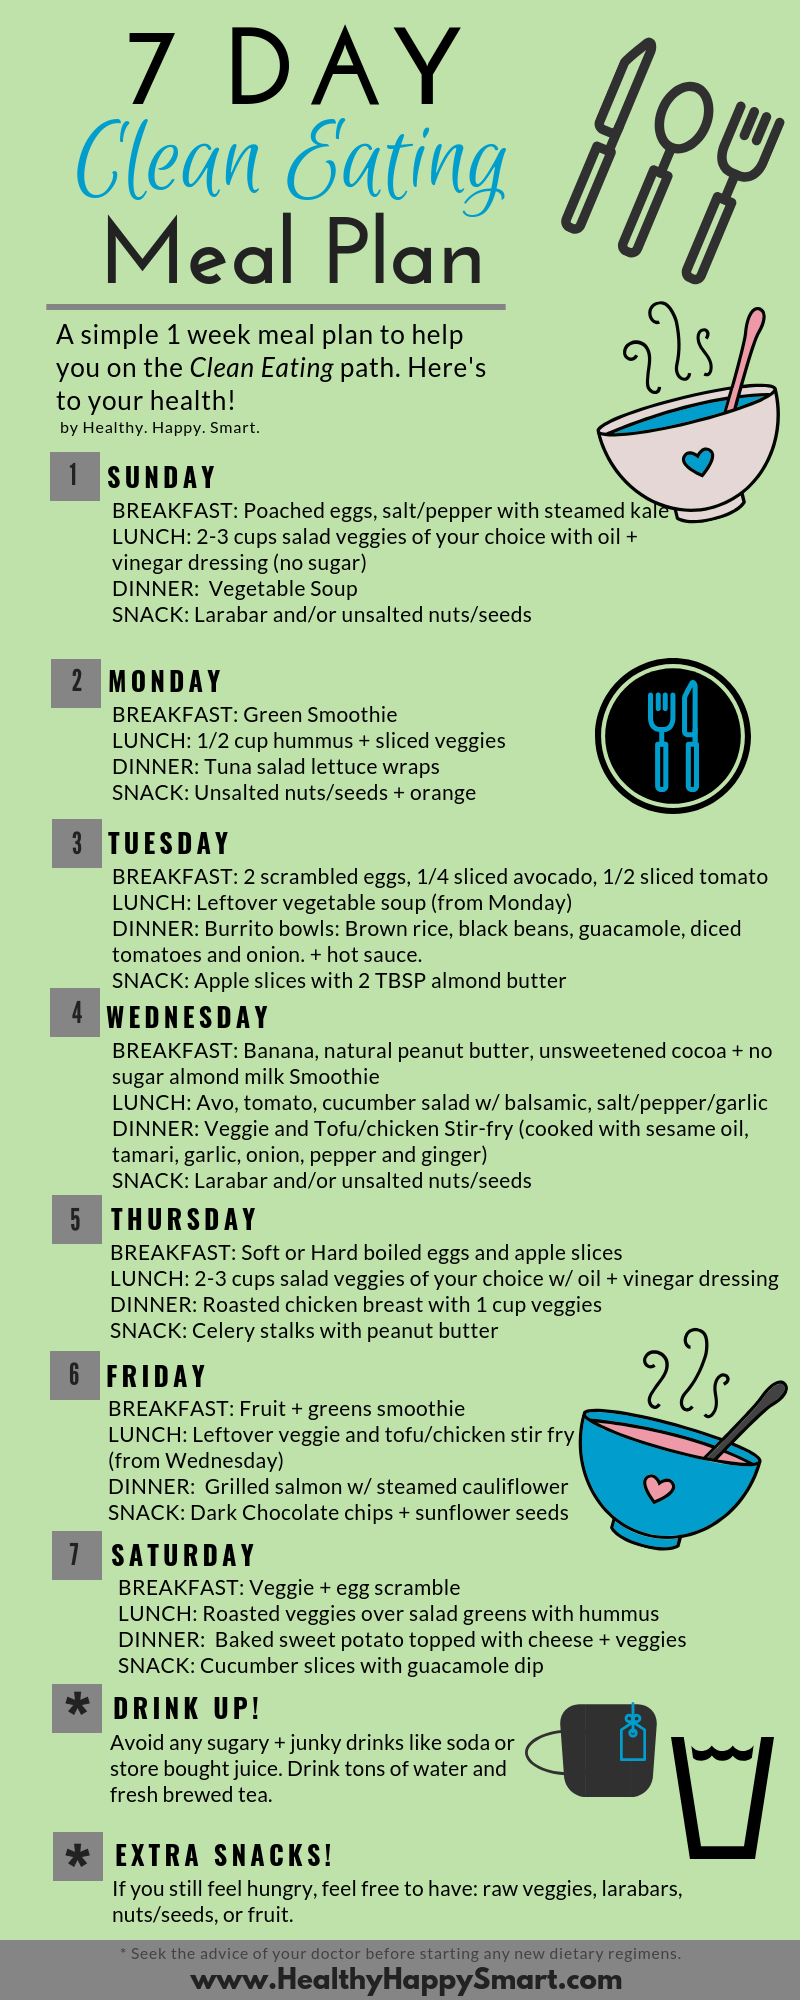 Clean Eating Meal Plan sample plan for beginners. Enjoy!